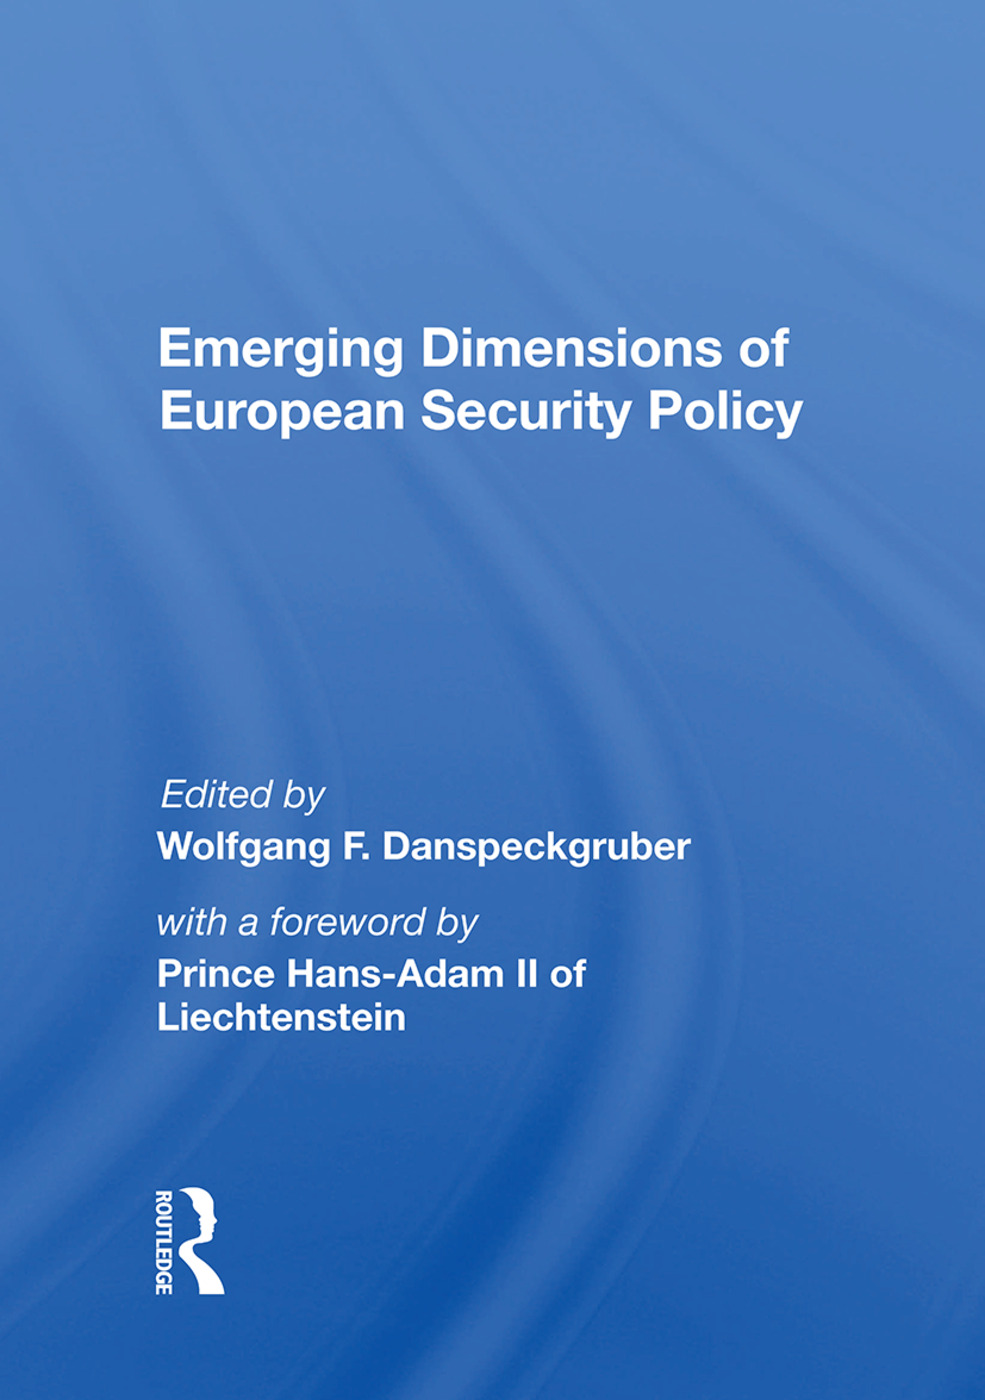 Emerging Dimensions of European Security Policy